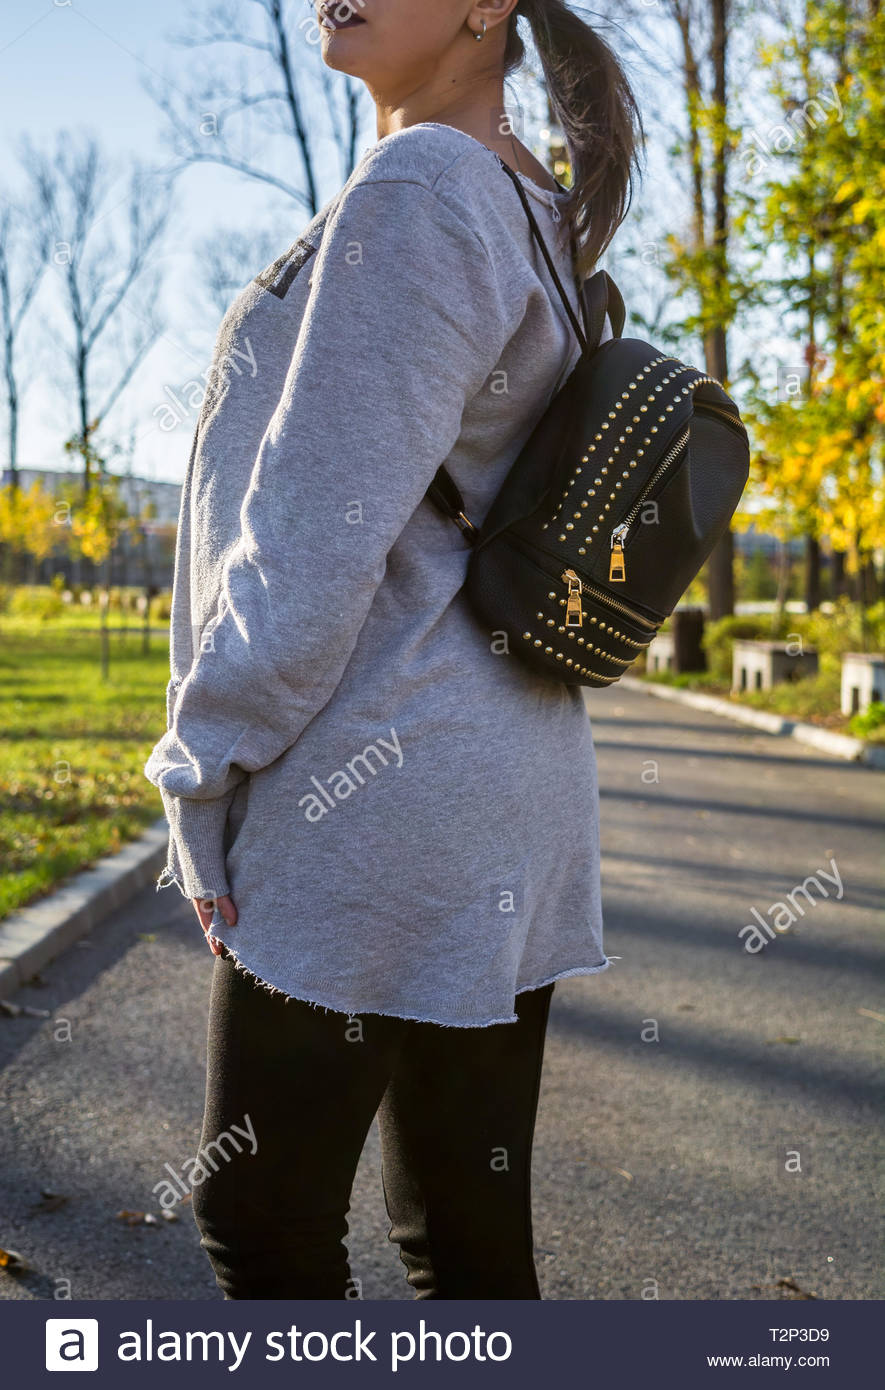 Woman in gray sweatshirt and black leggings wearing a leather backpack as accessory. Autumn and casual style. Blurred background. - Stock Image